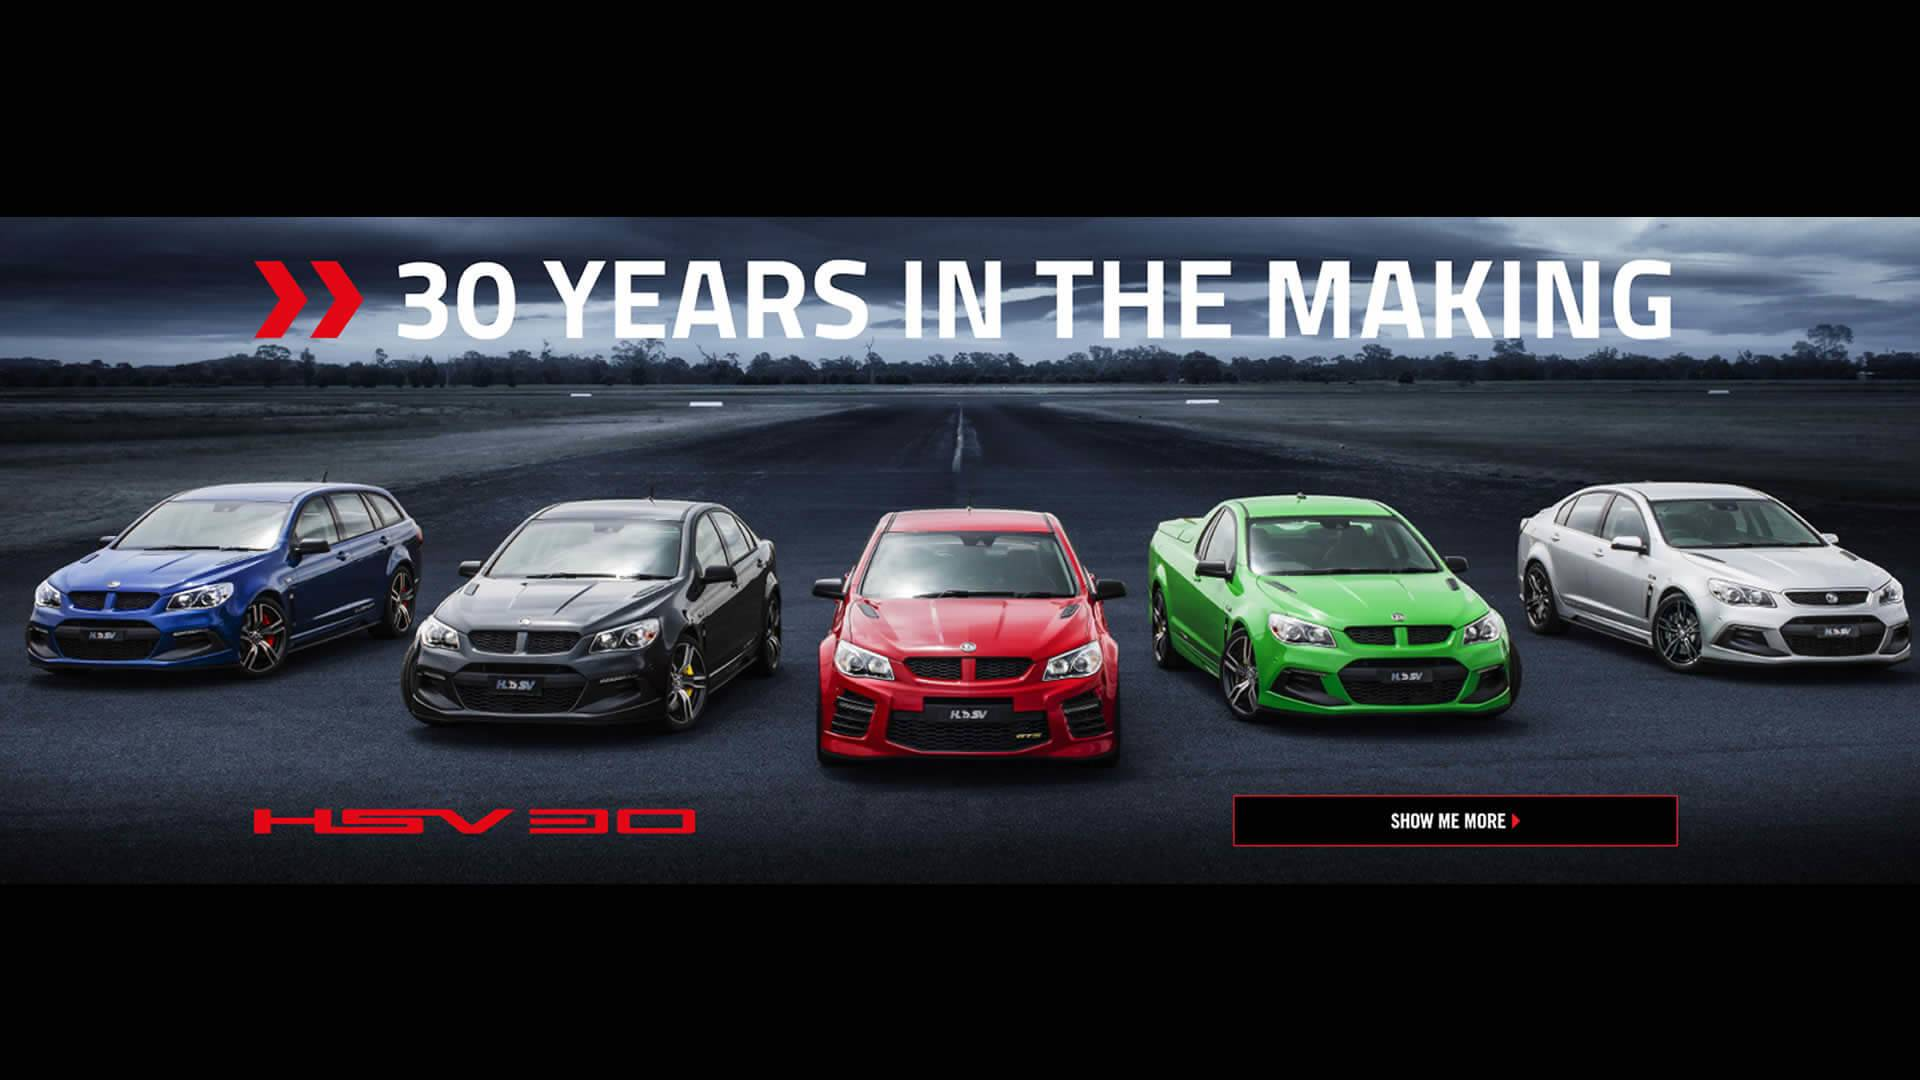 HSV TEMPLATE 30 YEARS IN THE MAKING